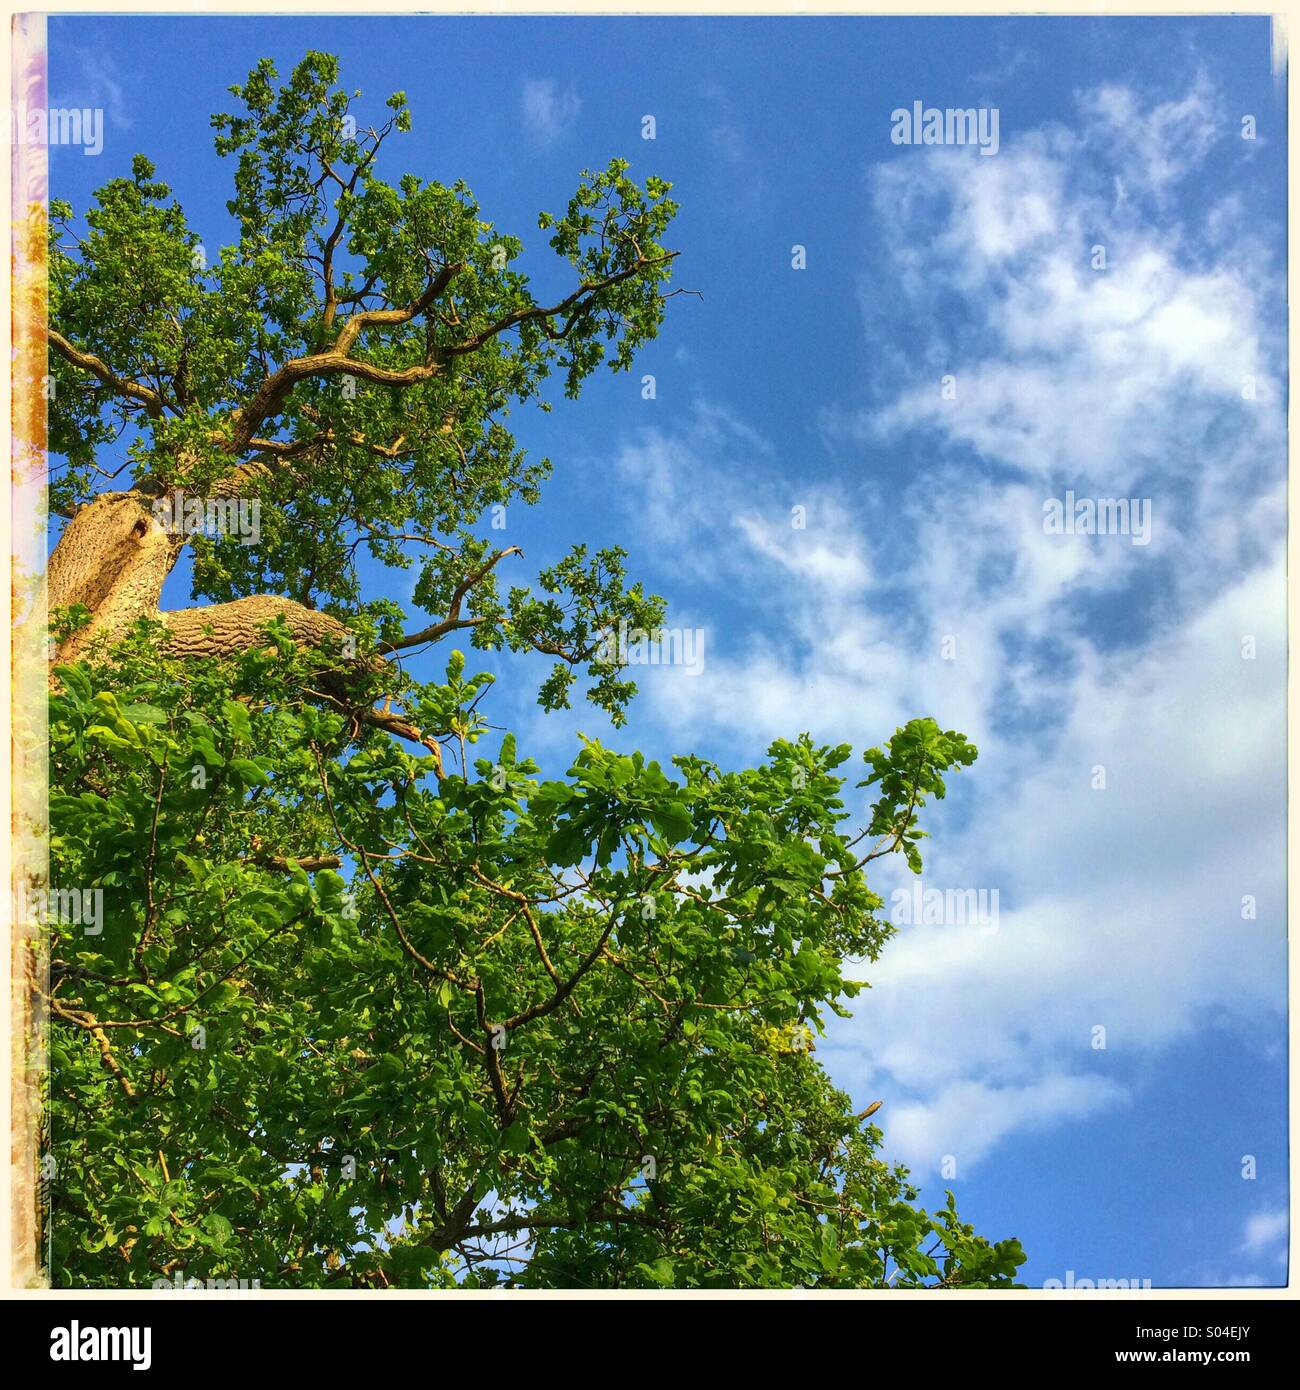 Oak tree against a blue summer sky with white fluffy clouds. - Stock Image